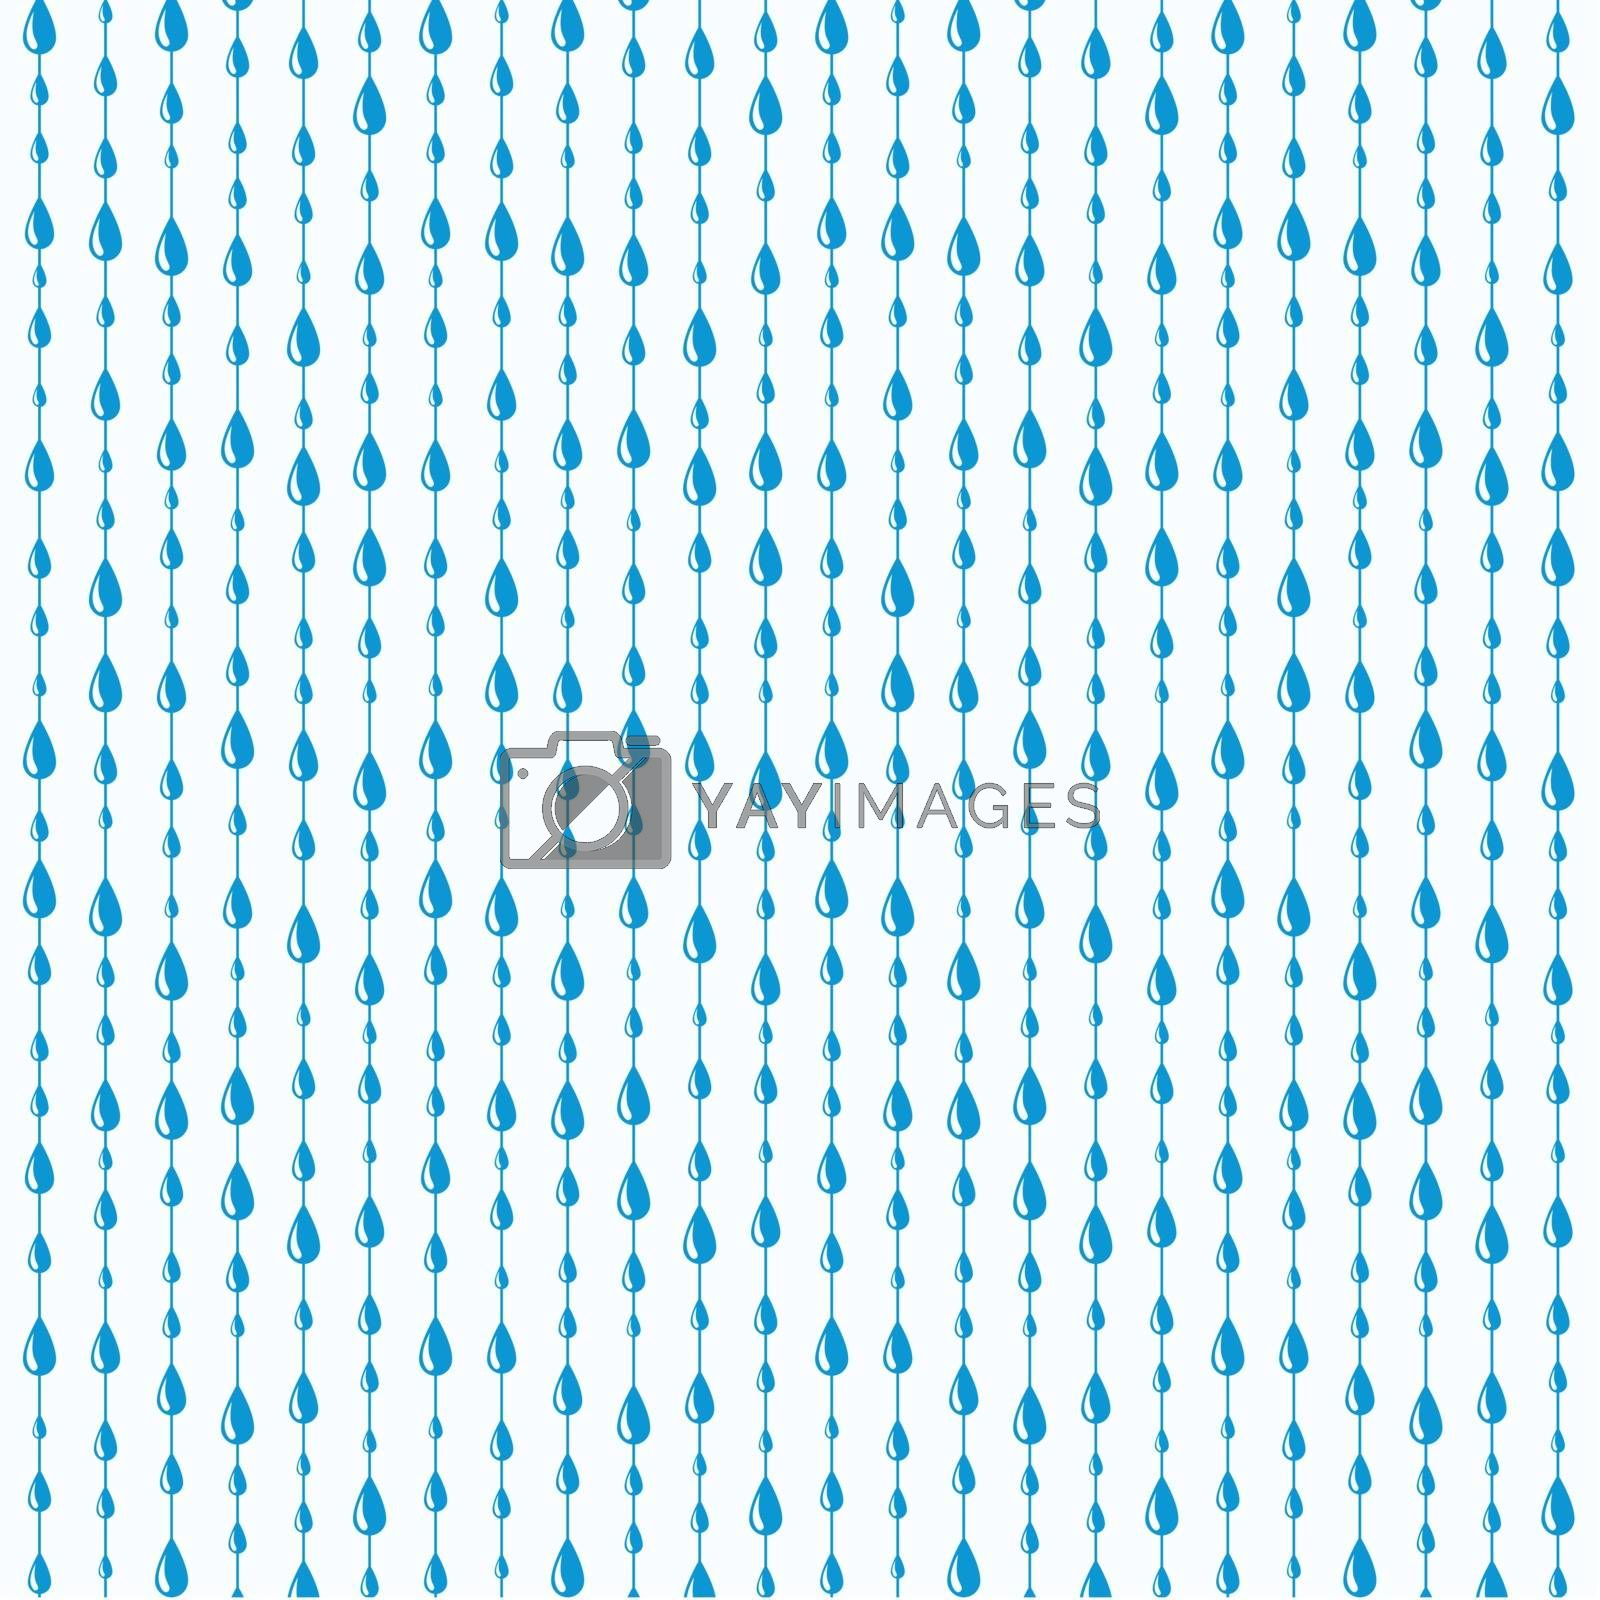 vector rain drops background pattern by freesoulproduction